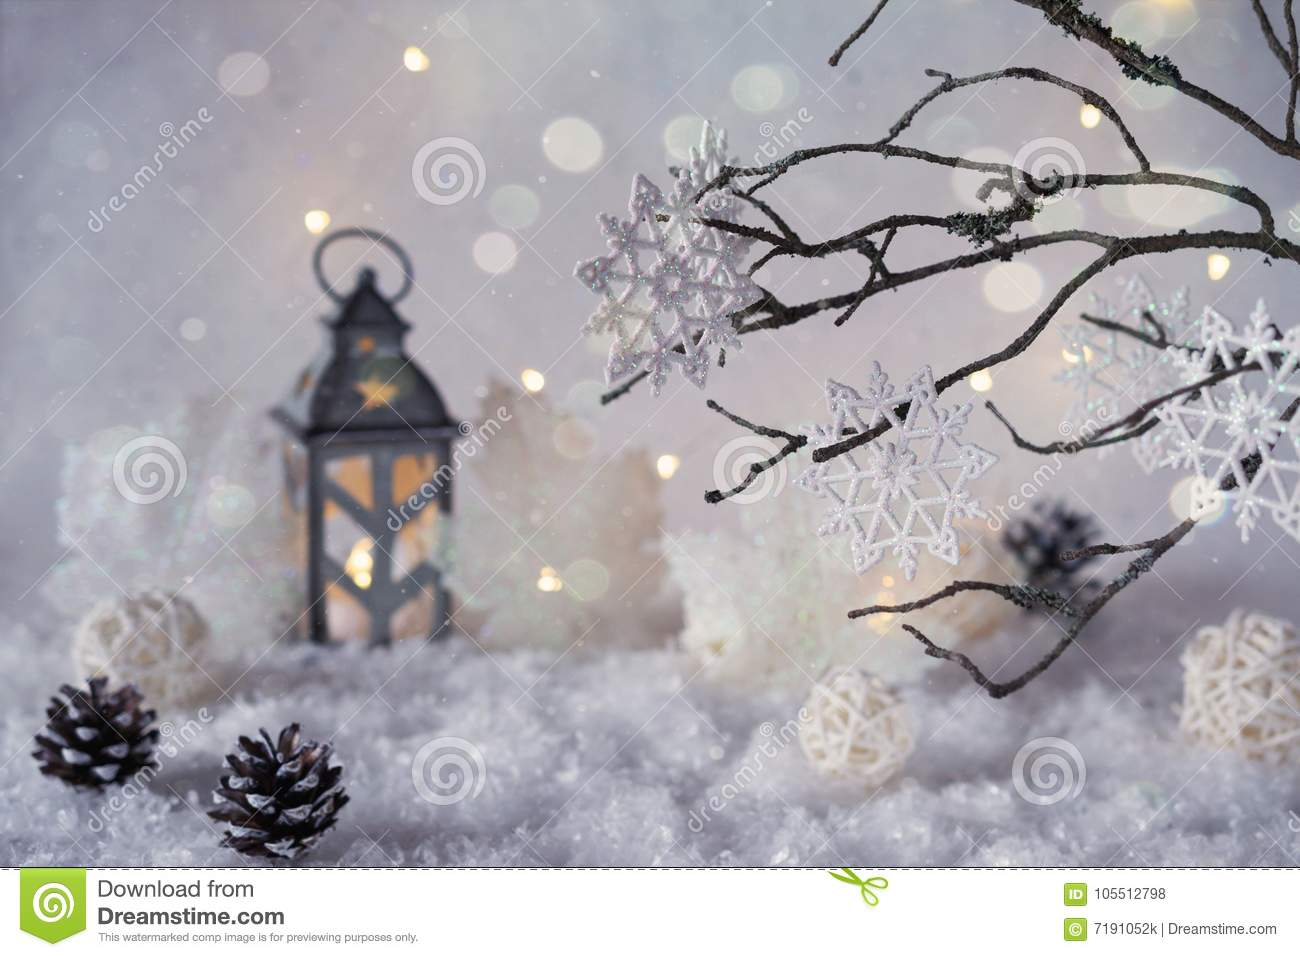 Frosty winter wonderland with snowfall and magic lights.